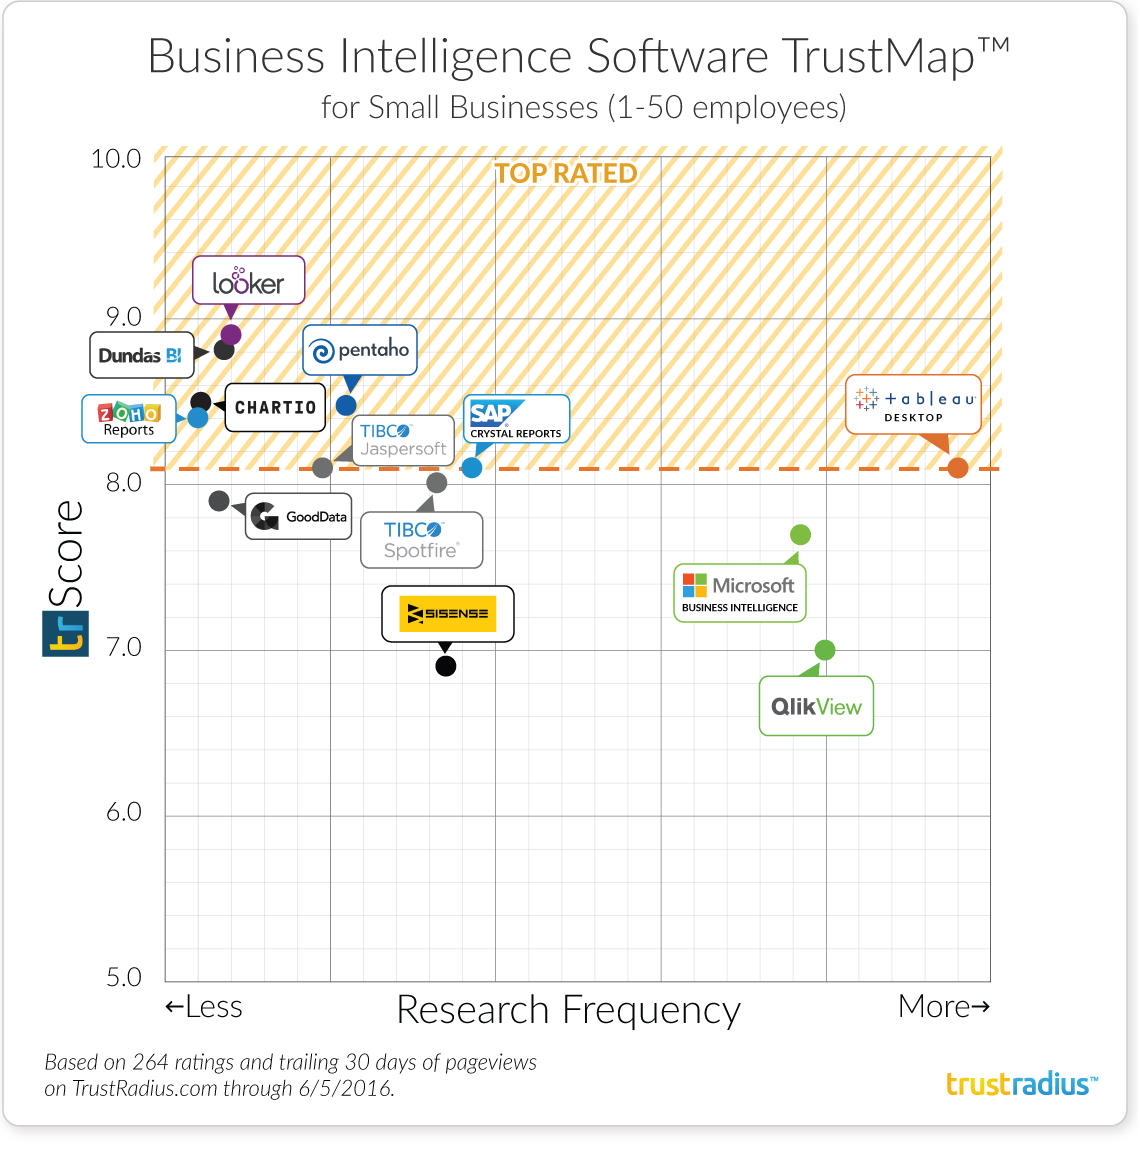 Small Business Intelligence Software TrustMap